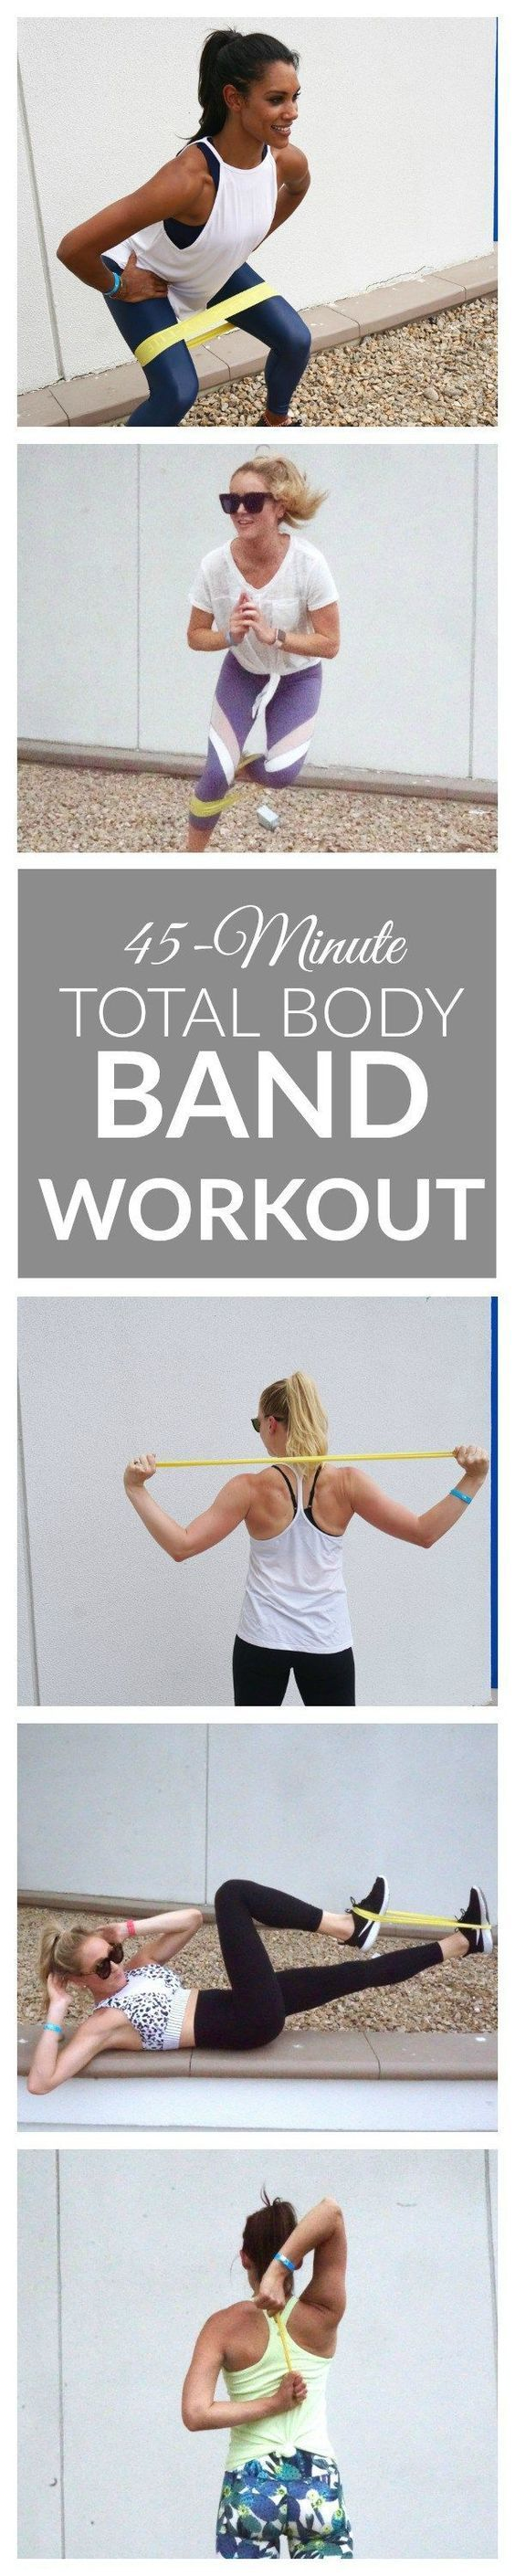 45 minute total body band workout fitness pinterest bandas el sticas ejercicios con banda. Black Bedroom Furniture Sets. Home Design Ideas